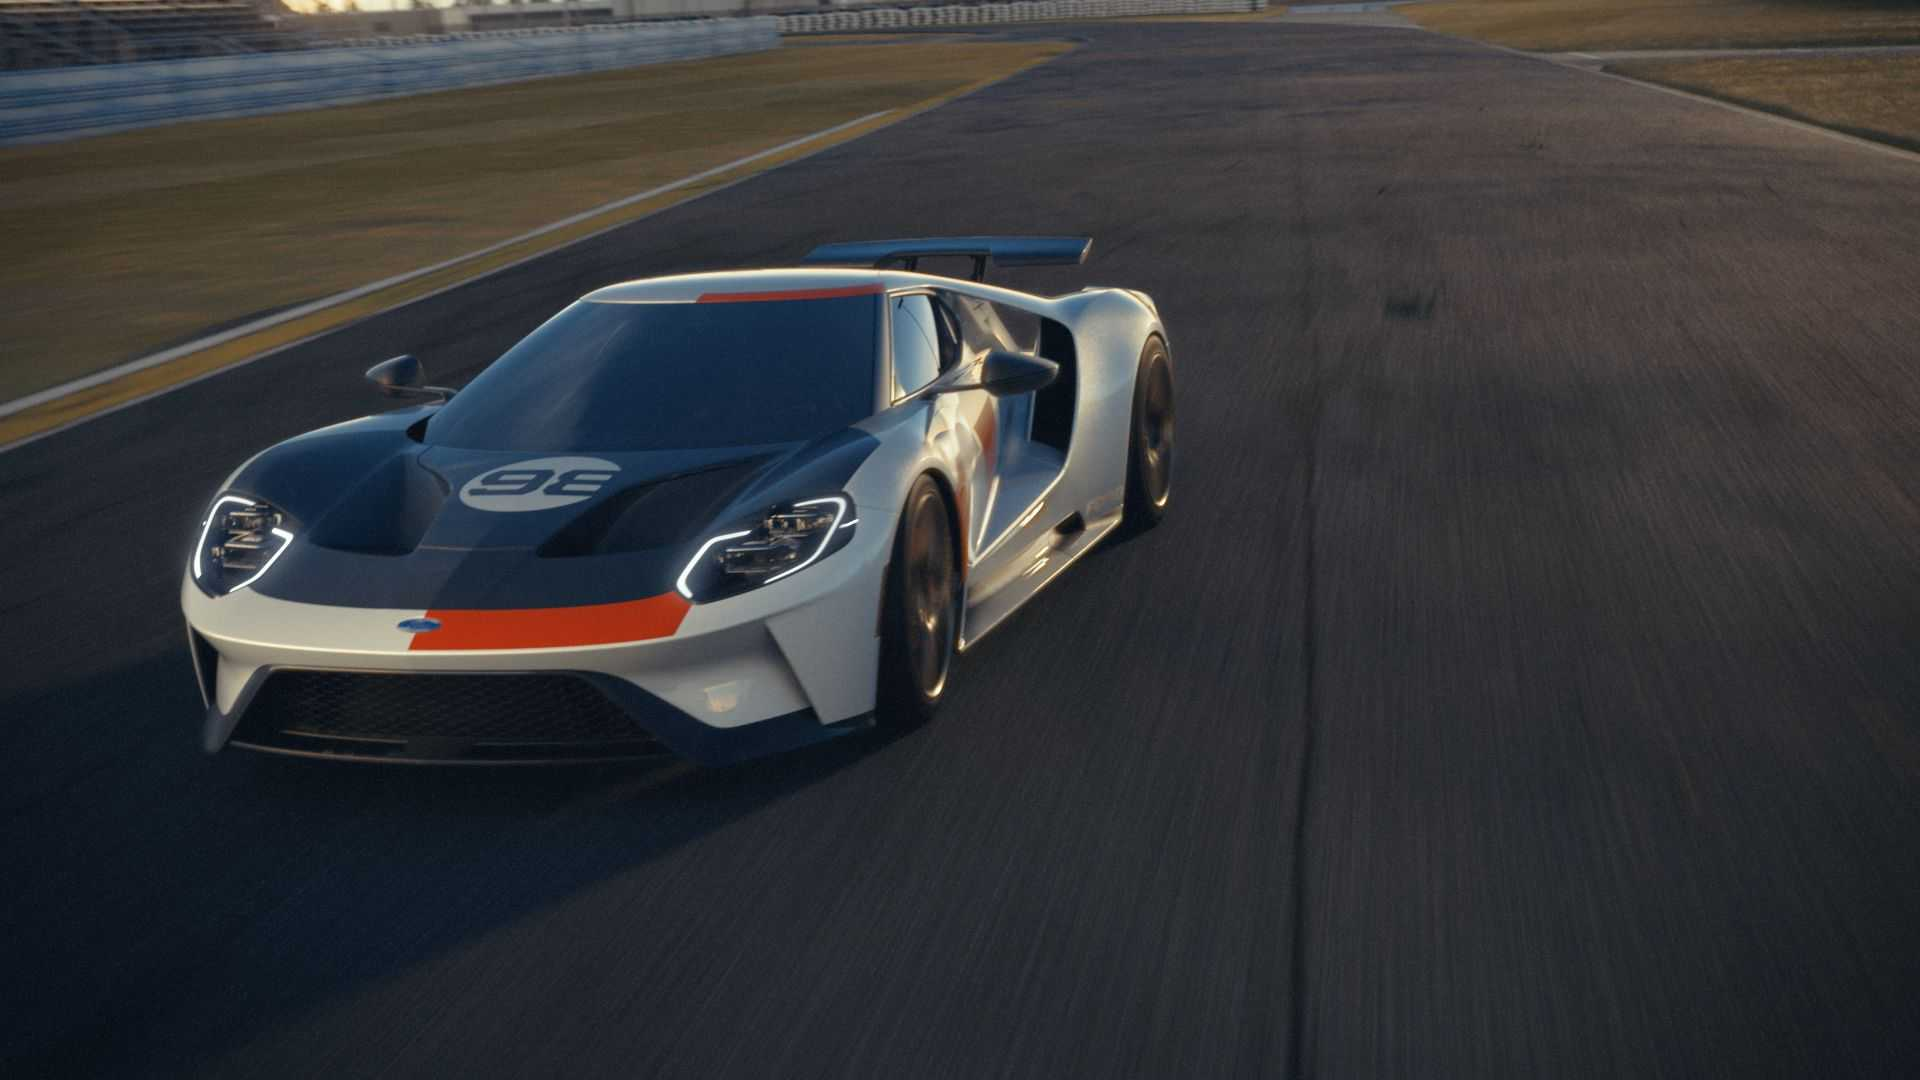 2021-ford-gt-heritage-edition-front-running-track.jpg